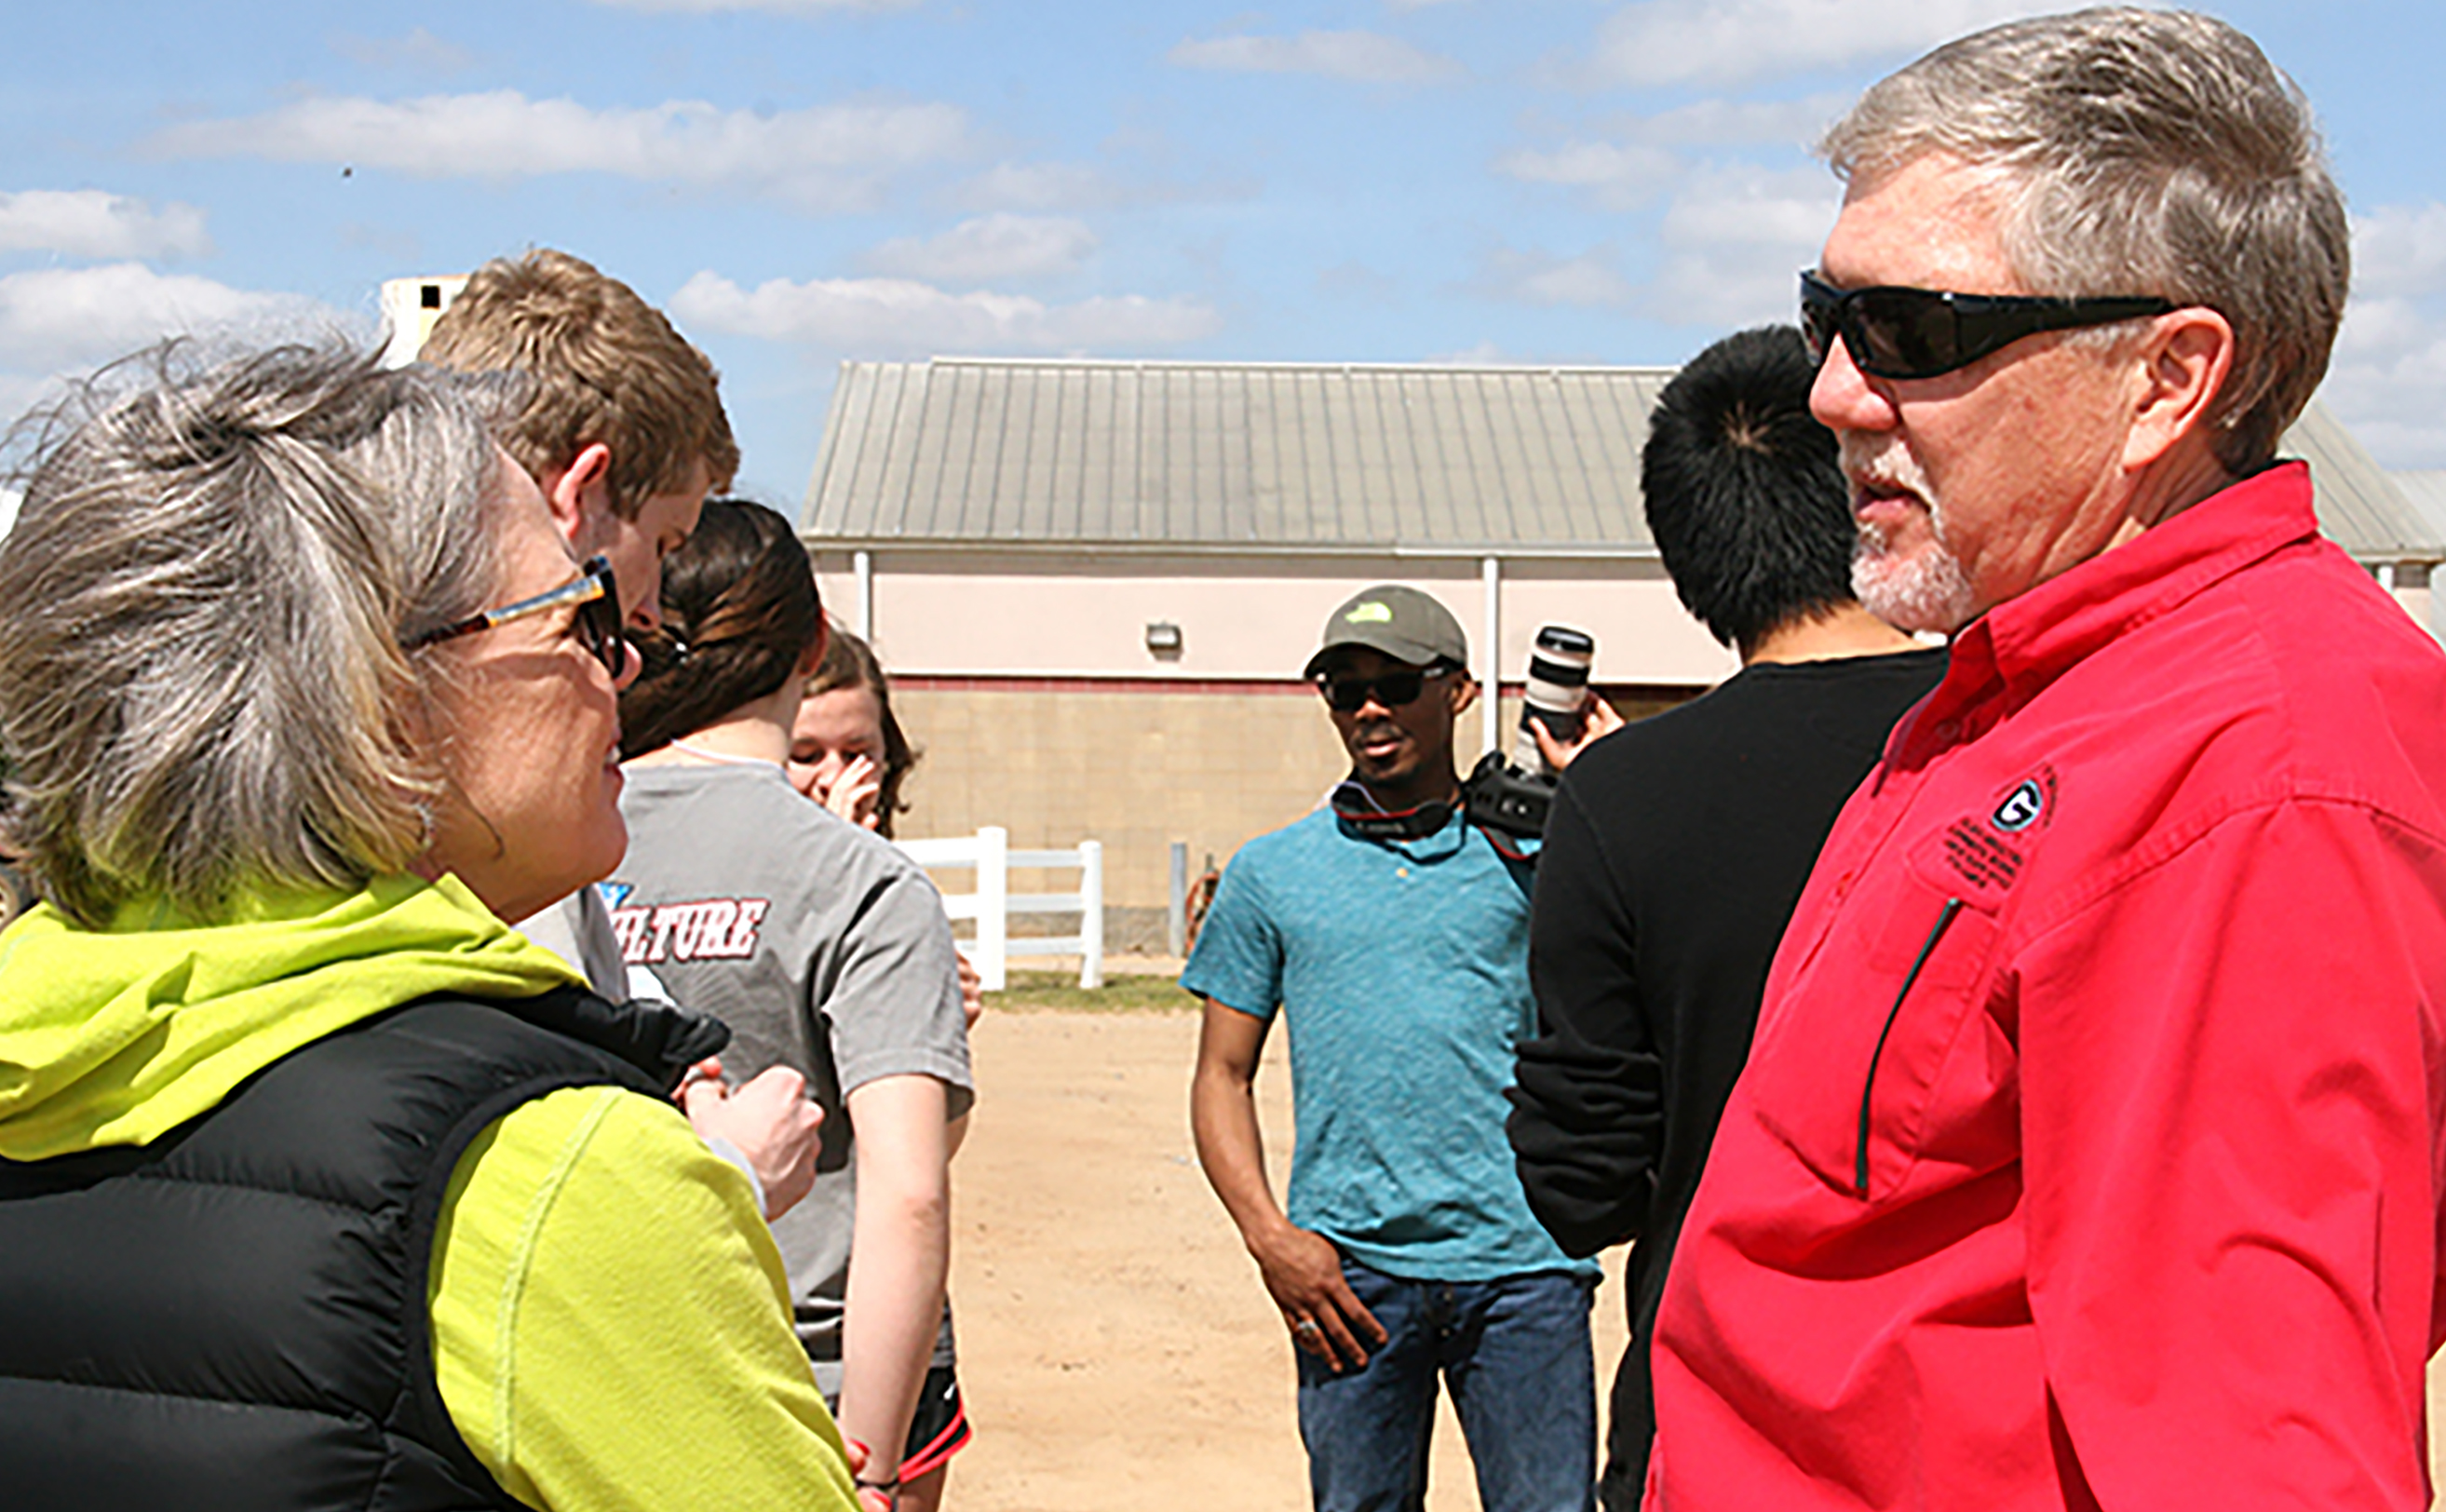 Joe West, assistant dean on the UGA Tifton Campus, and Jean Bertrand, assistant dean for academic affairs, chat during a stop at the dairy on the UGA Tifton Campus. March 9, 2016